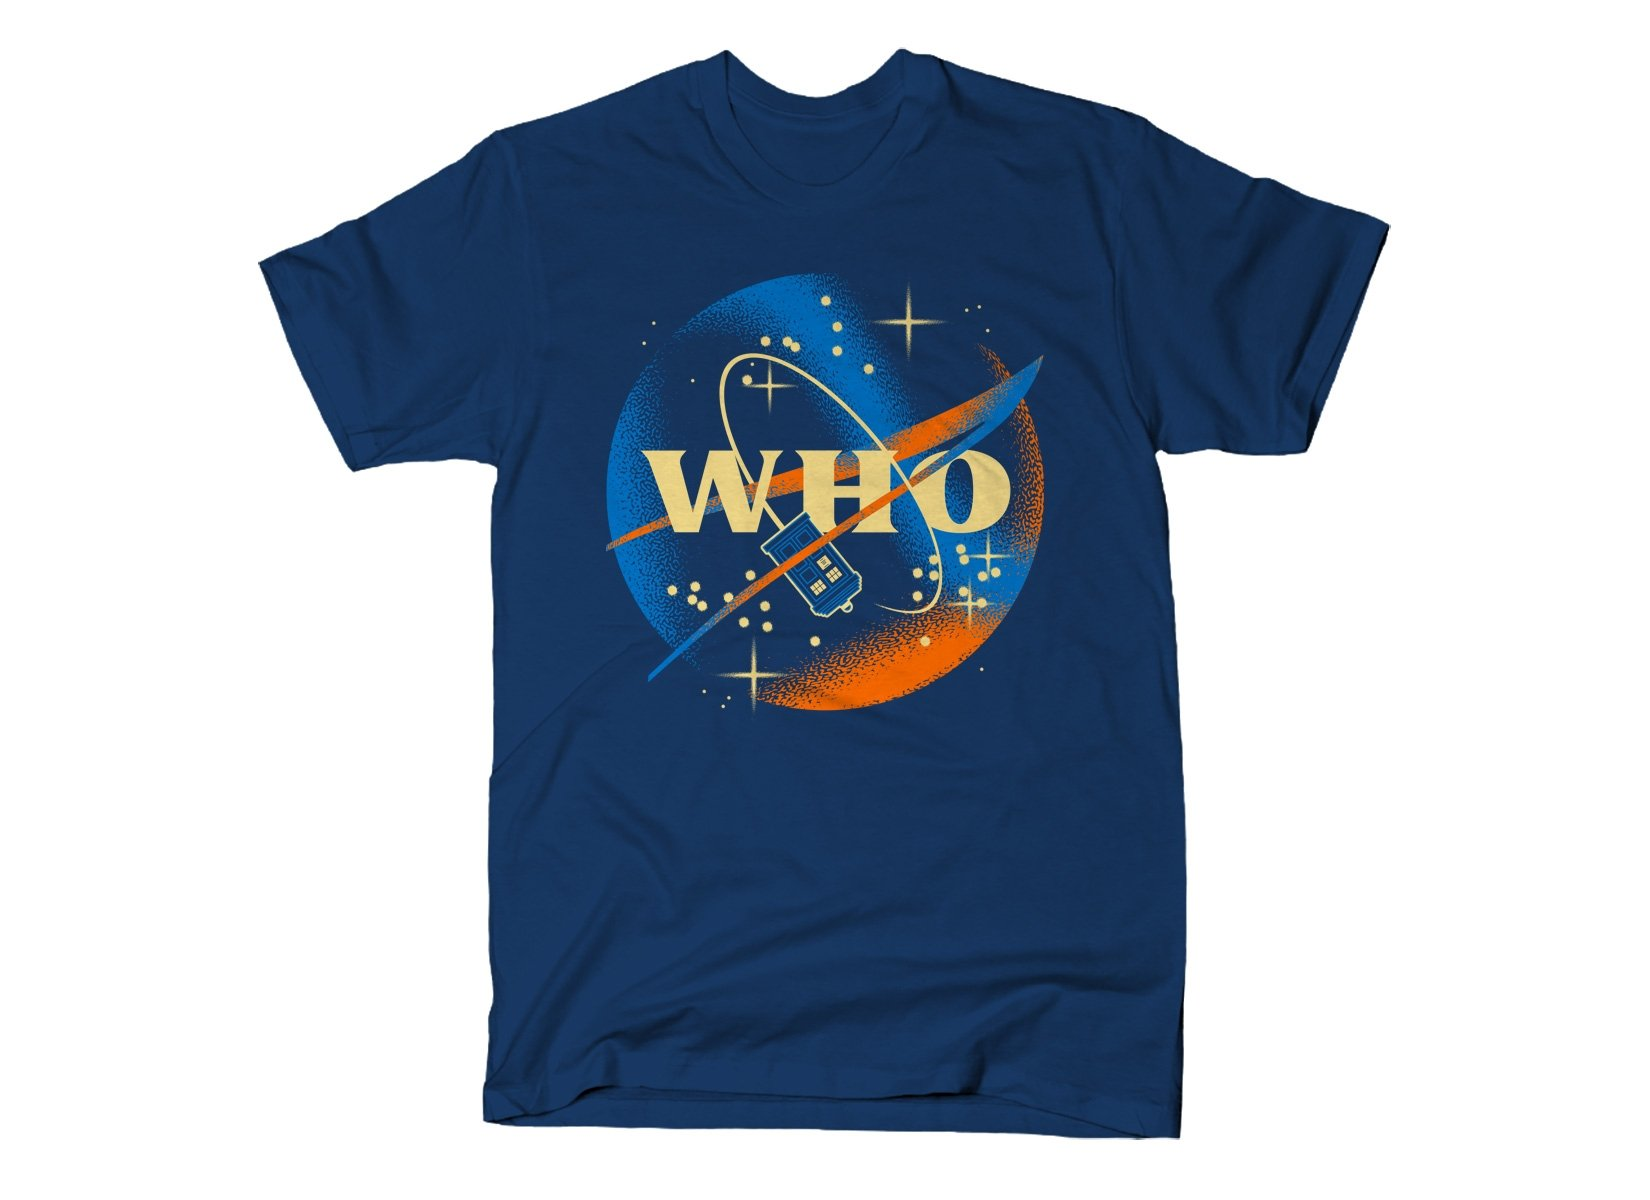 Who Space Administration on Mens T-Shirt